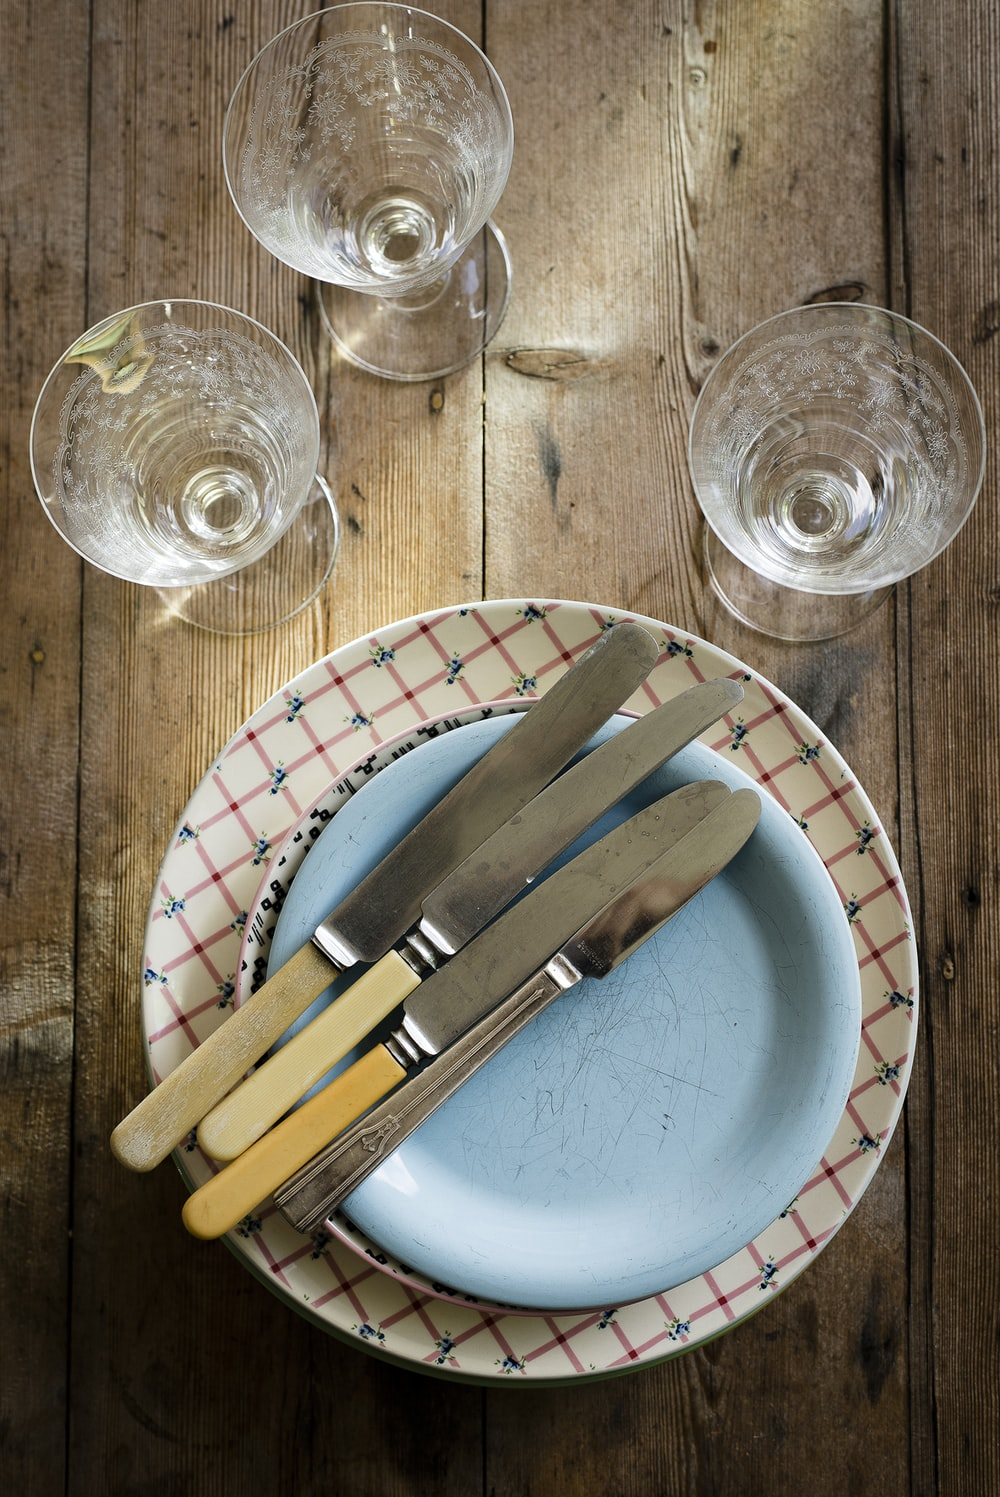 flat-lay photography of stem glasses, saucers, plate, and bread and butter knives